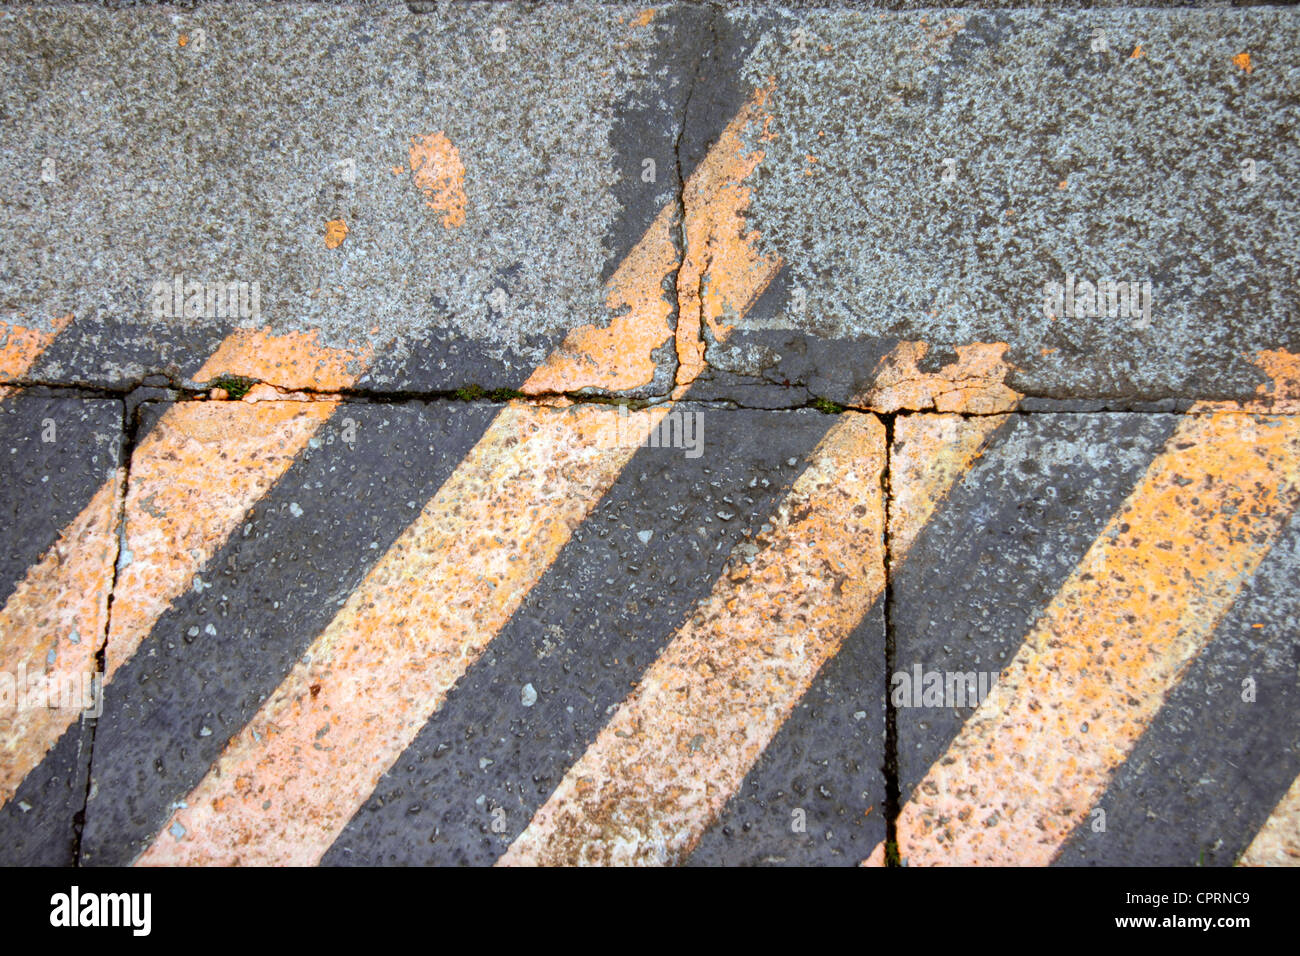 Painted paving slabs to warn of danger by edge of train station platform. - Stock Image